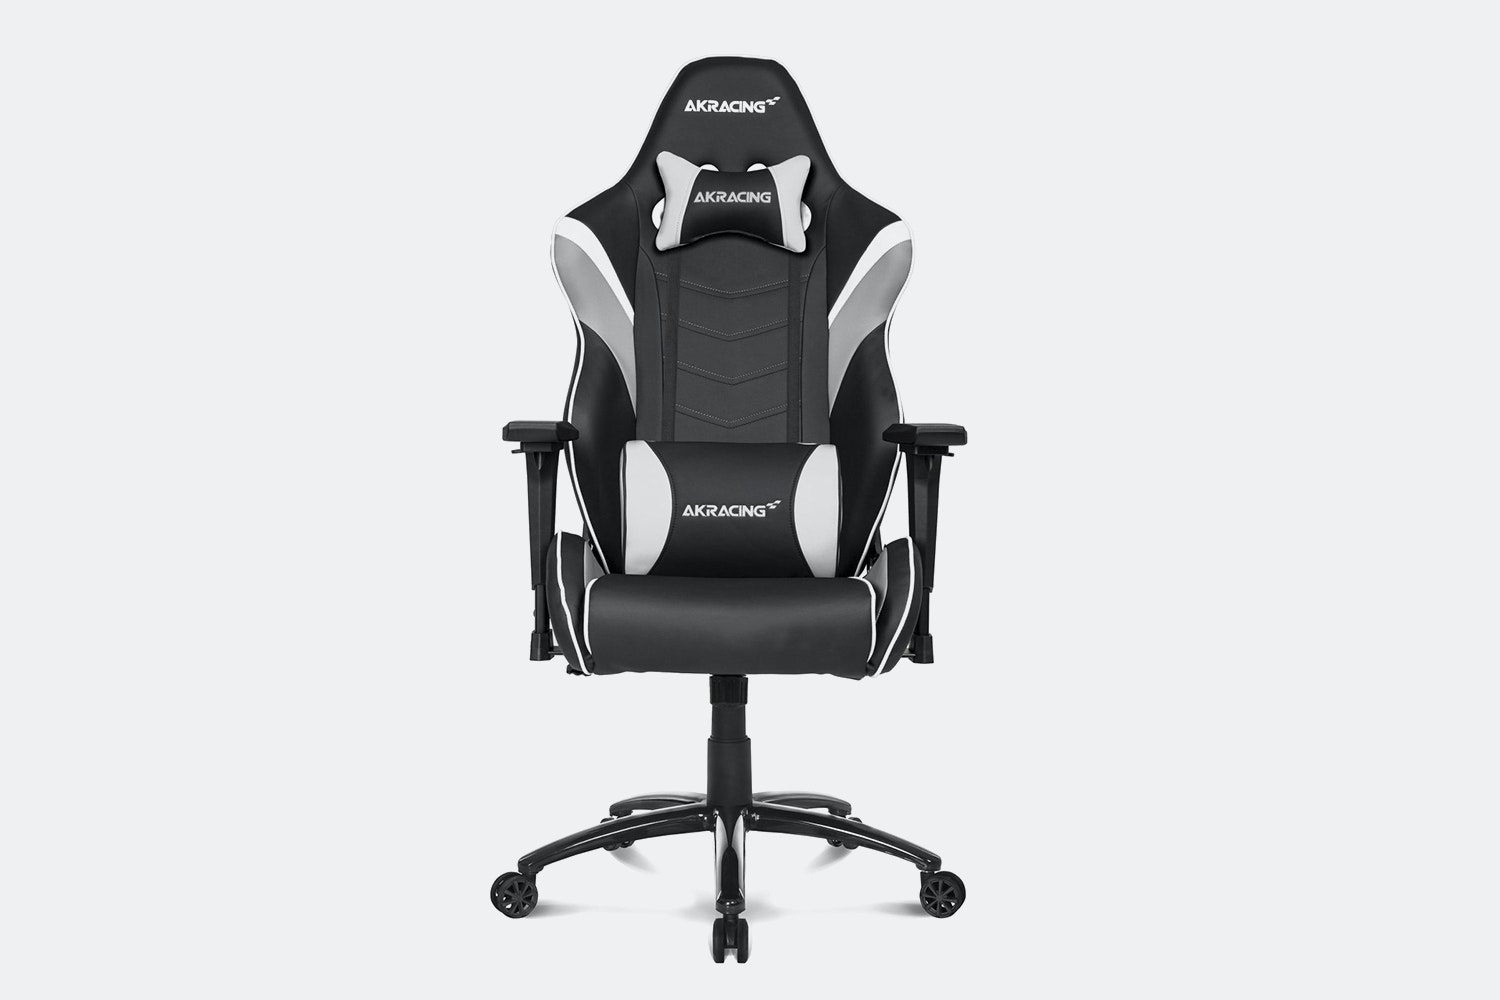 LX Gaming Chair - White (+ $20)